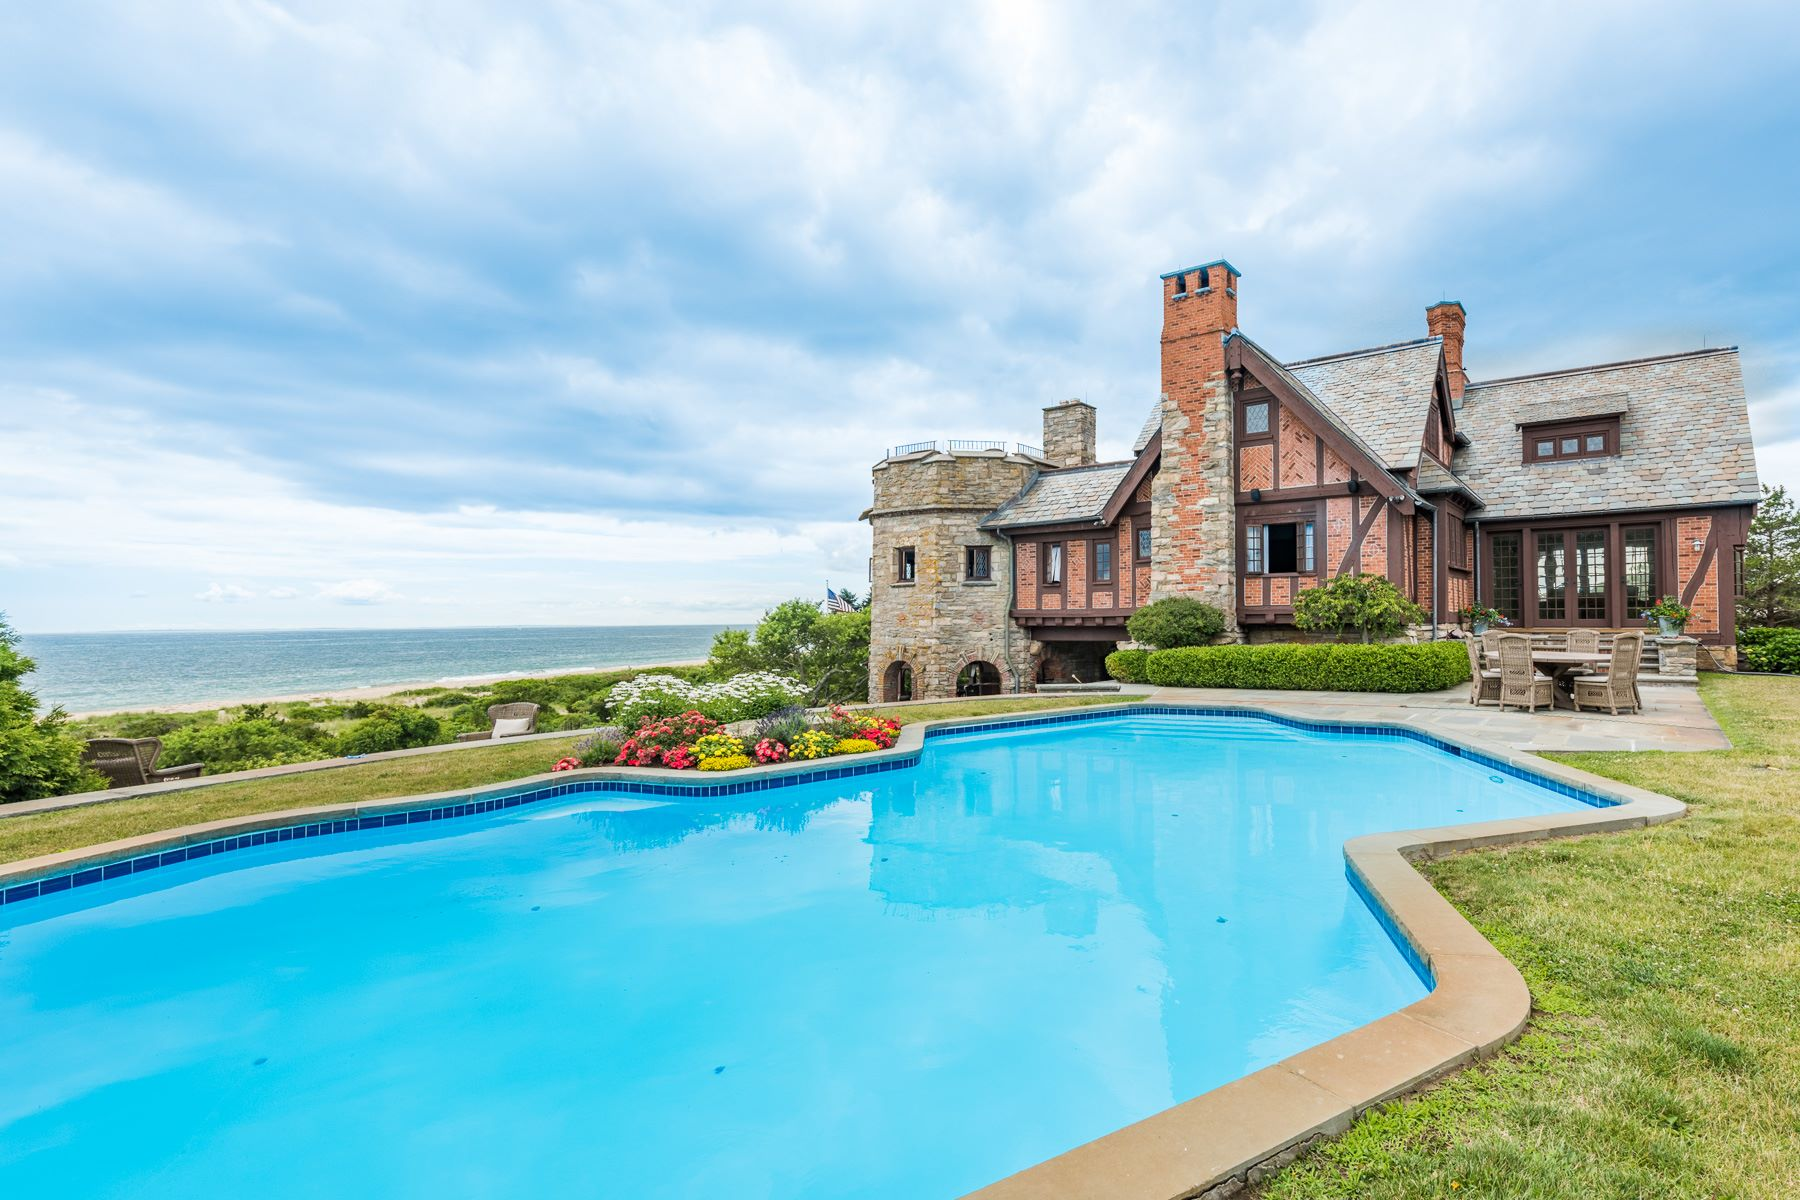 واحد منزل الأسرة للـ Rent في The Timbers 19-23 Ocean View Highway Westerly, Rhode Island 02891 United States